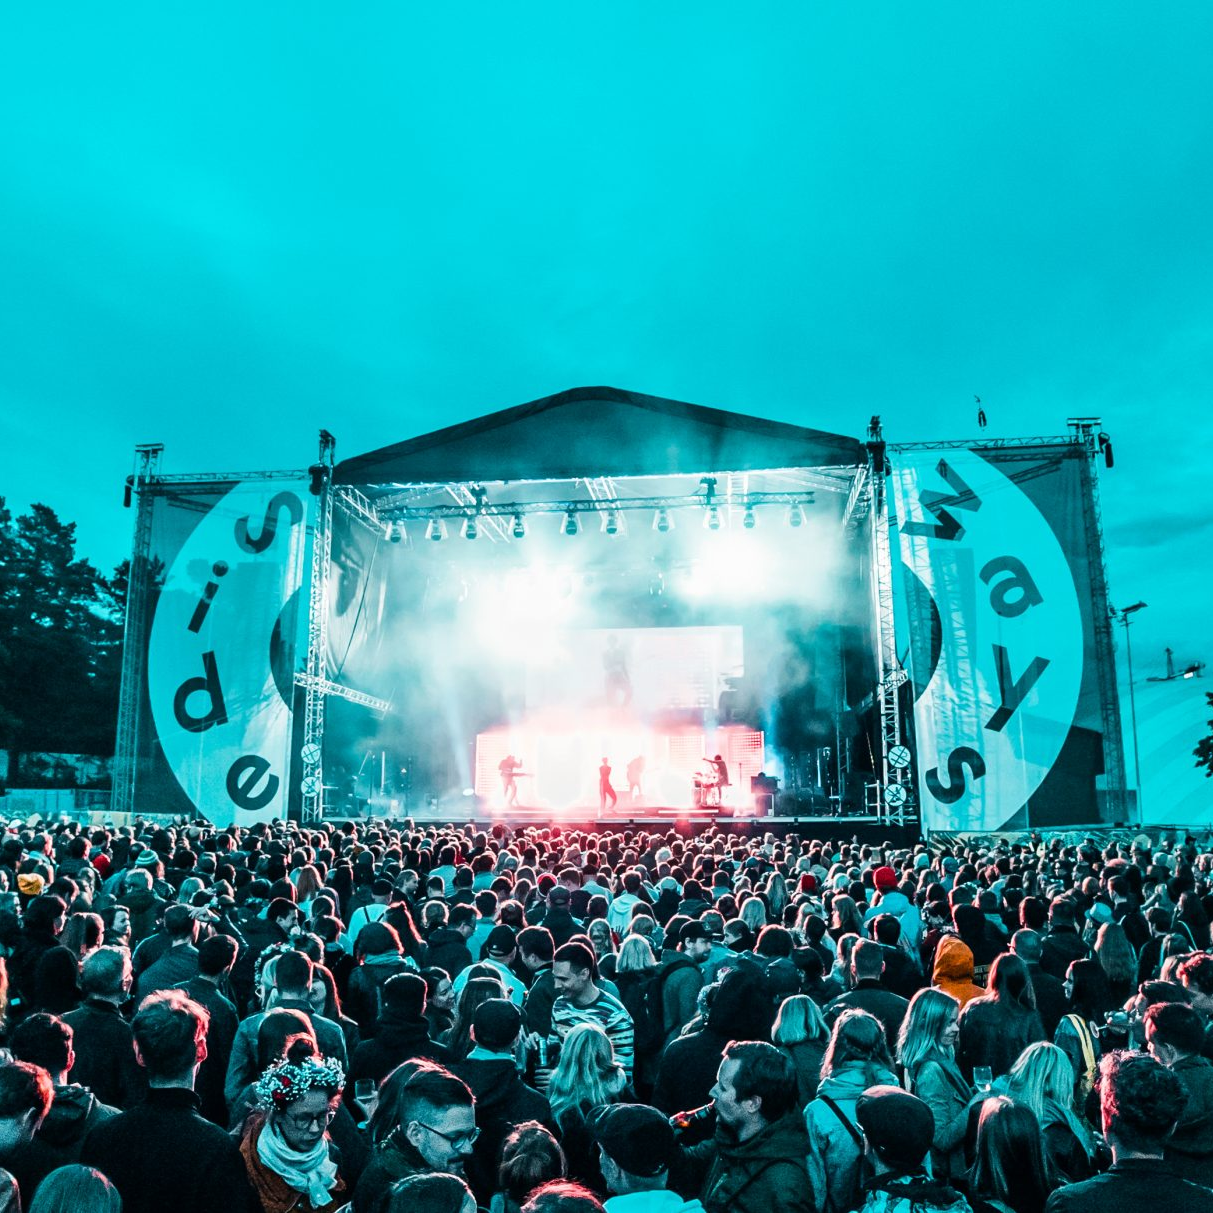 A crowd of people at a SideWays festival.